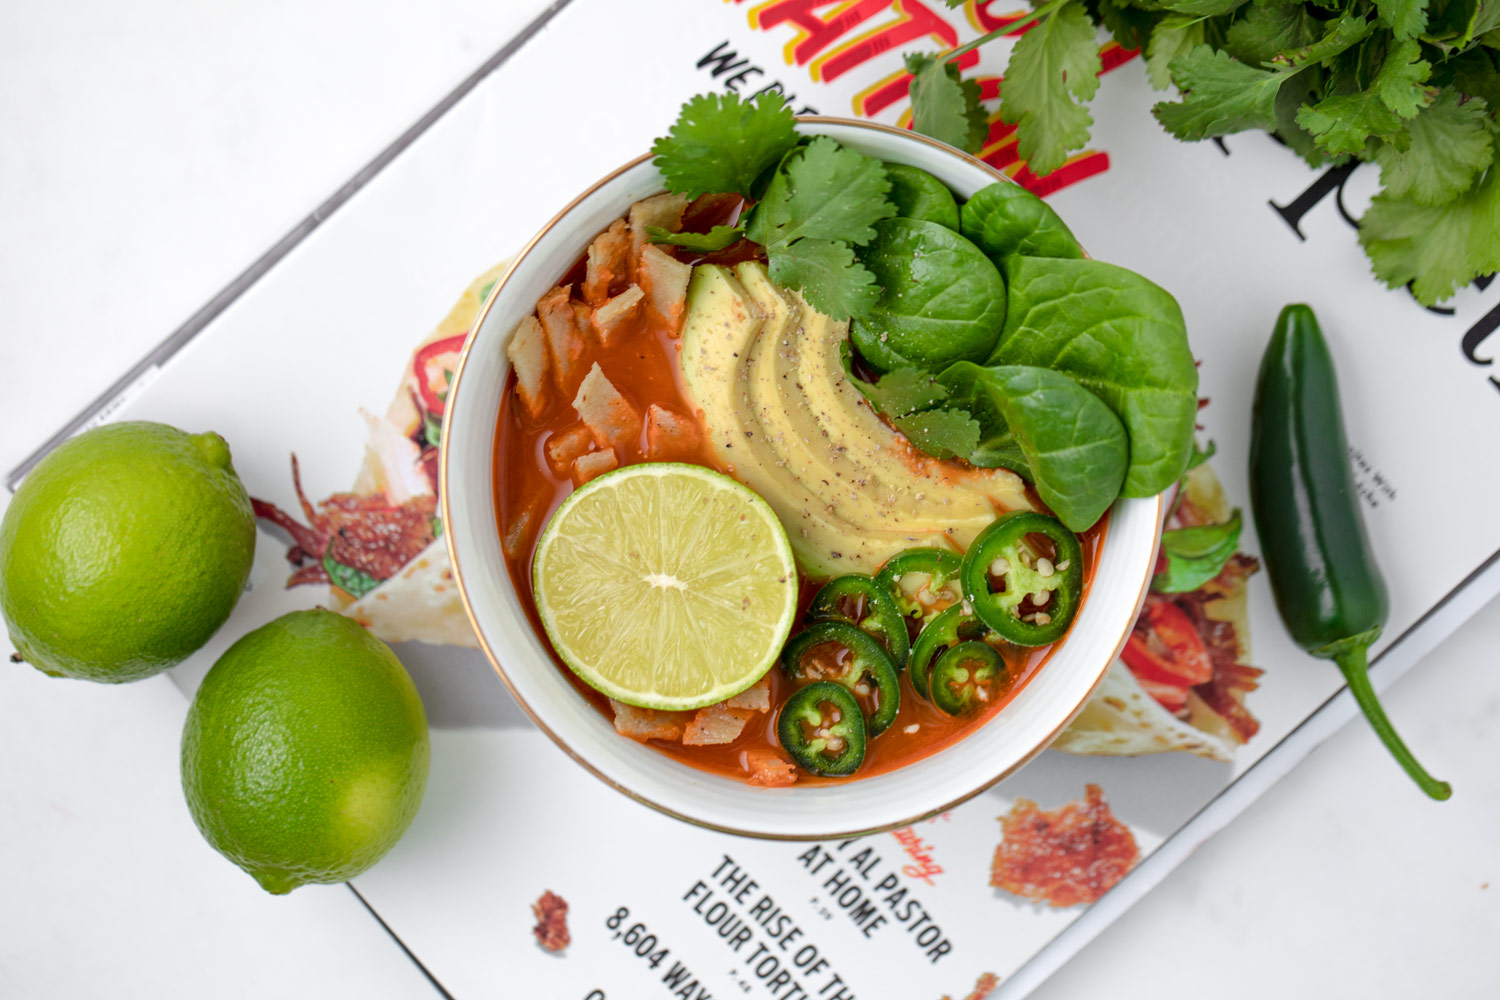 Classic Mexican Tortilla Soup from Above with avocado, lime and cilantro By Karolin Baitinger